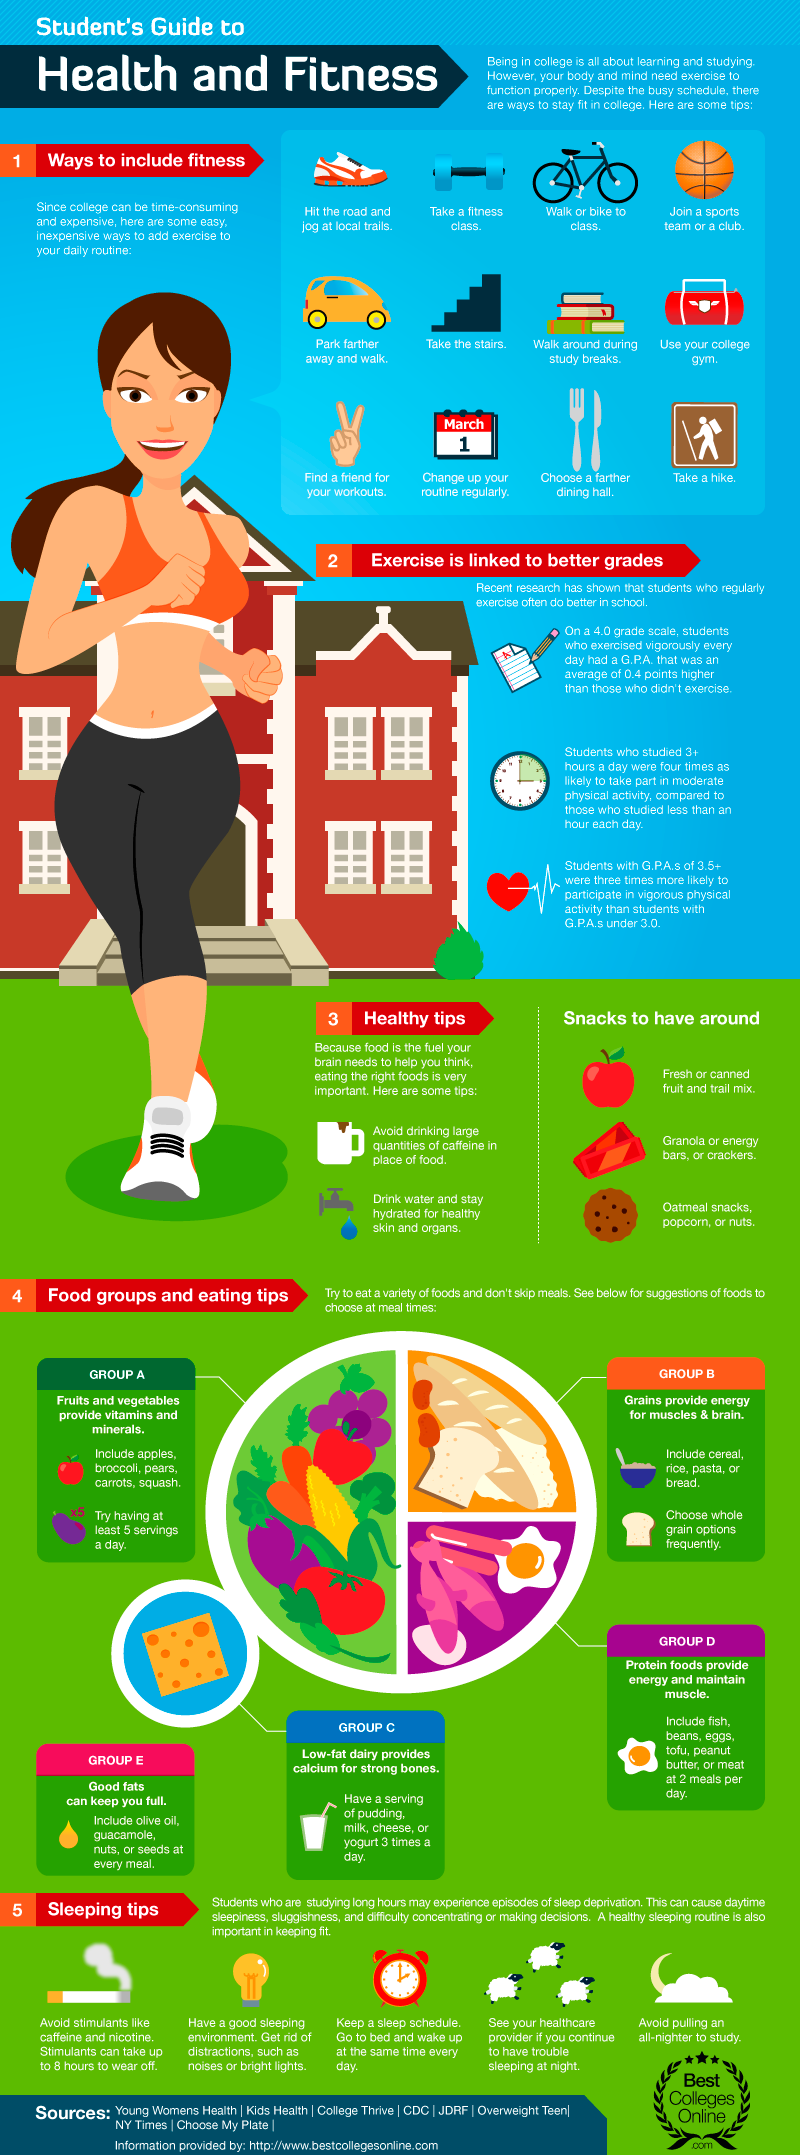 A Student Guide To Exercising In College